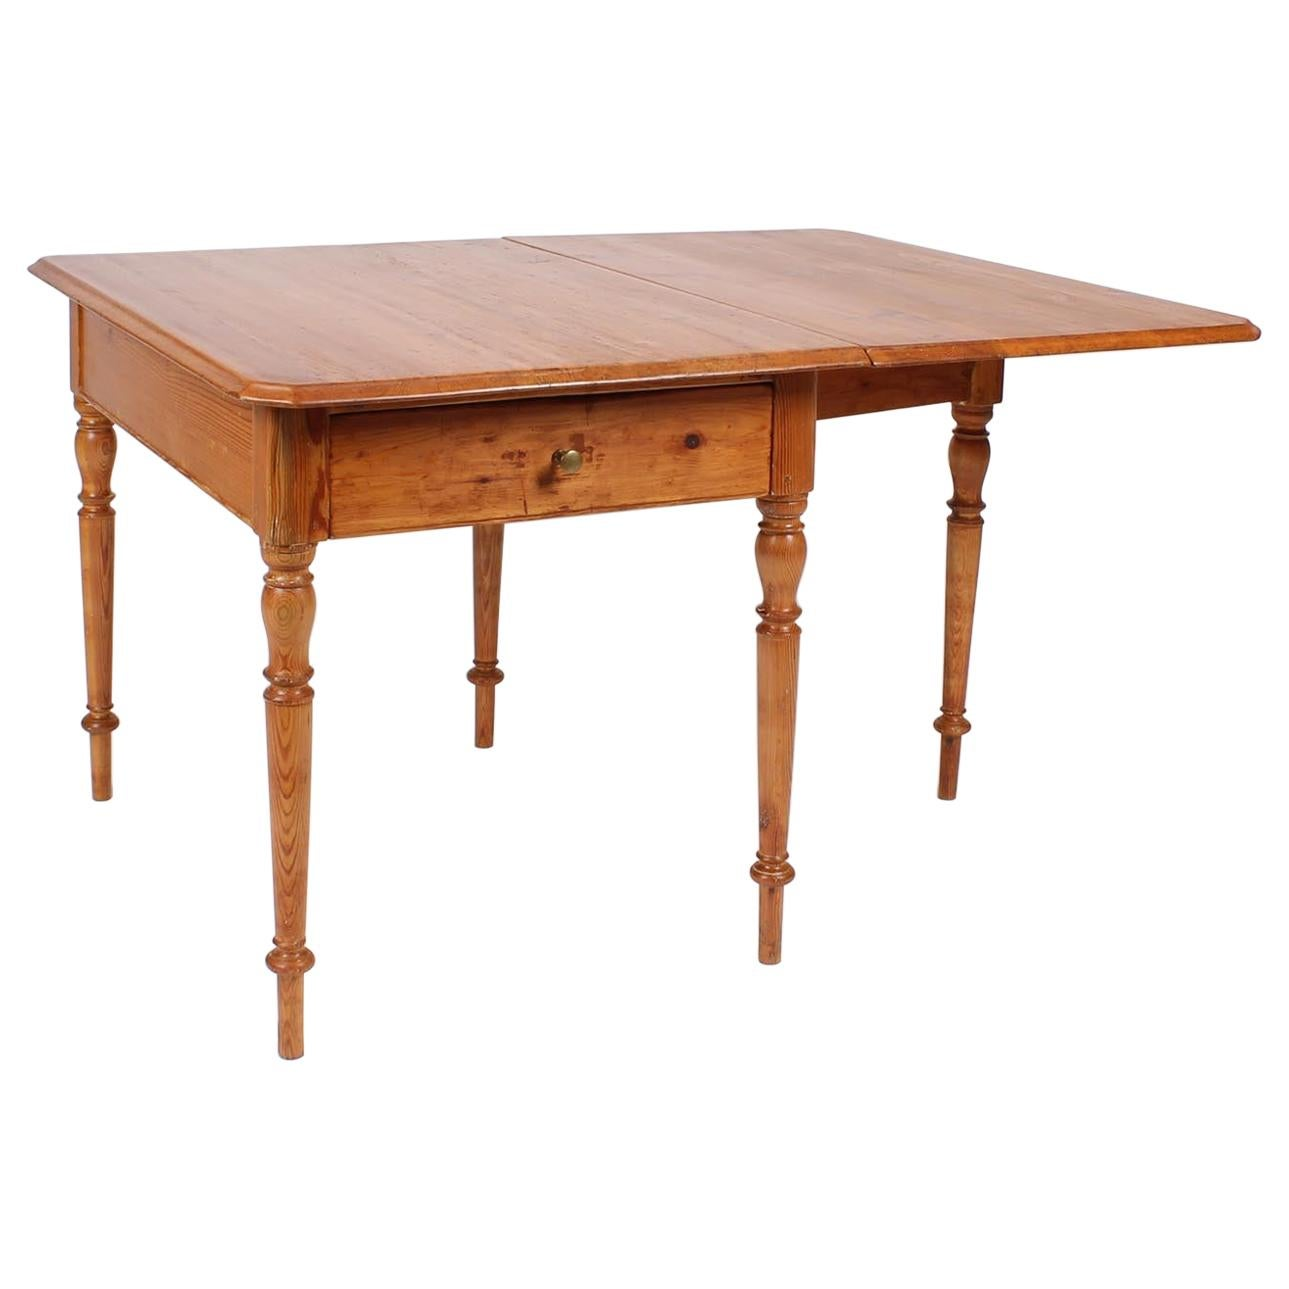 19th Century Farmhouse Dining or Kitchen Table, Drop-Leaf, Sweden, Pine